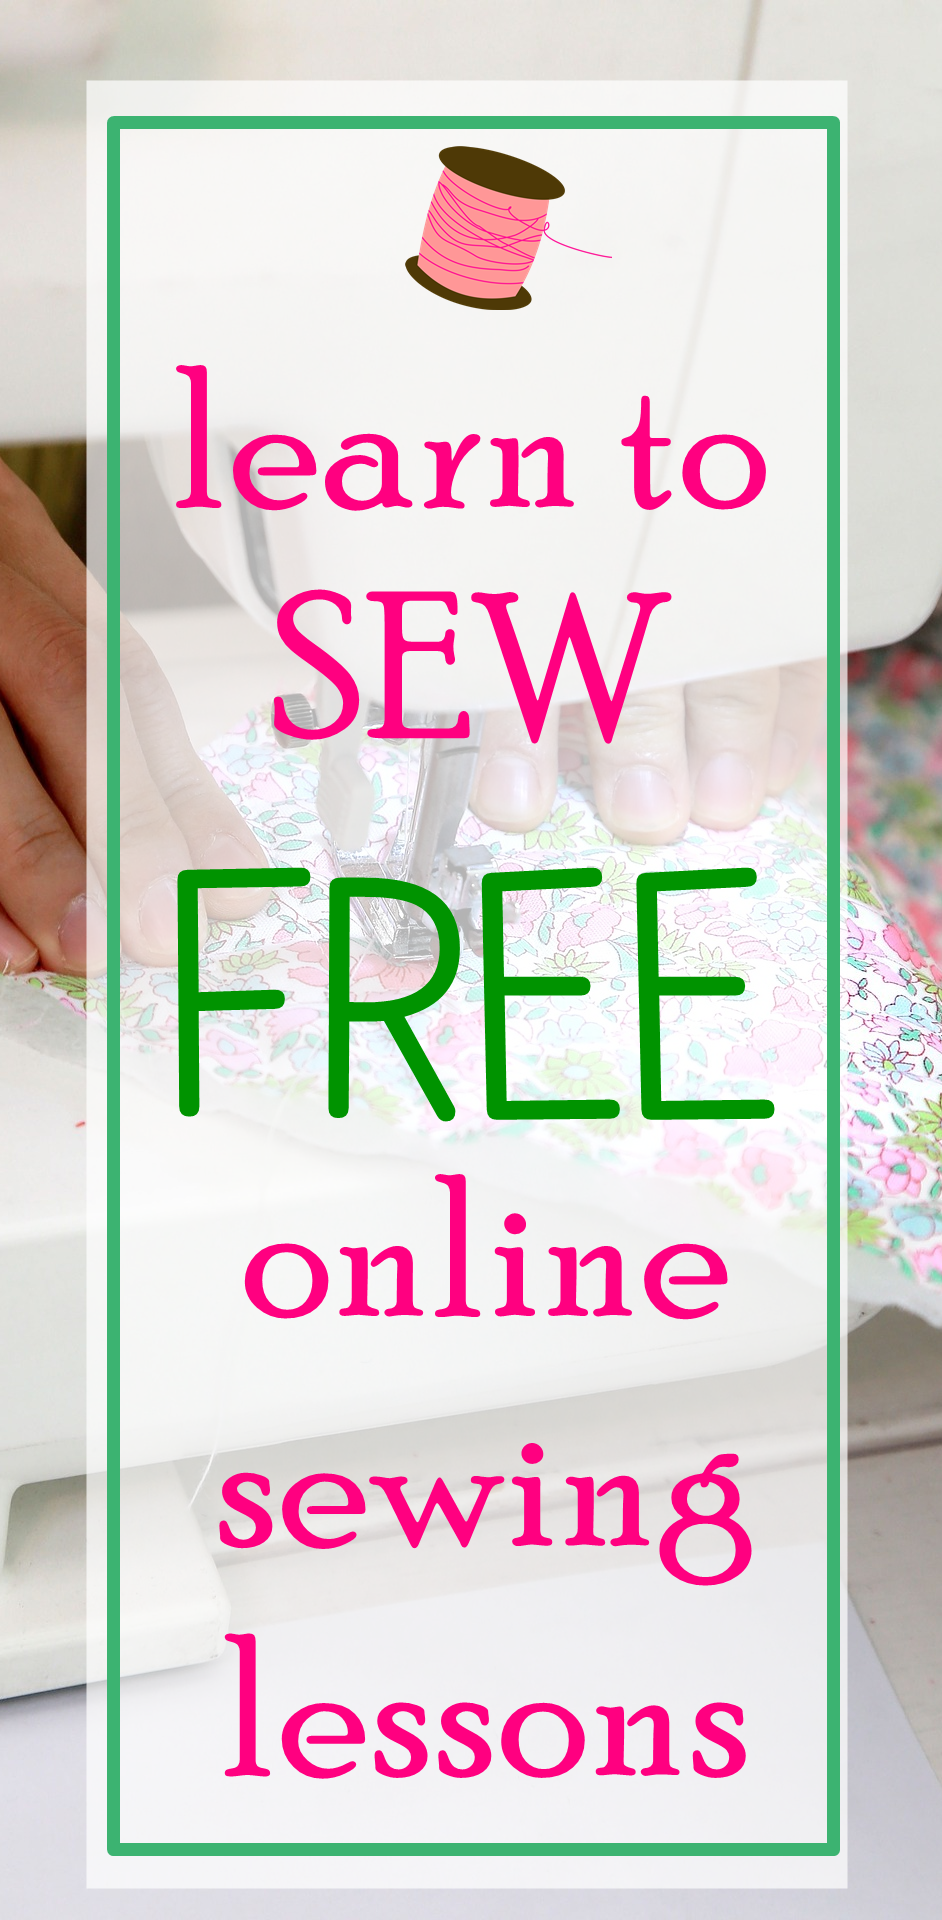 TOP 12 Free Online Basic Sewing Classes for Beginners | Sewing ... : free quilting lessons - Adamdwight.com